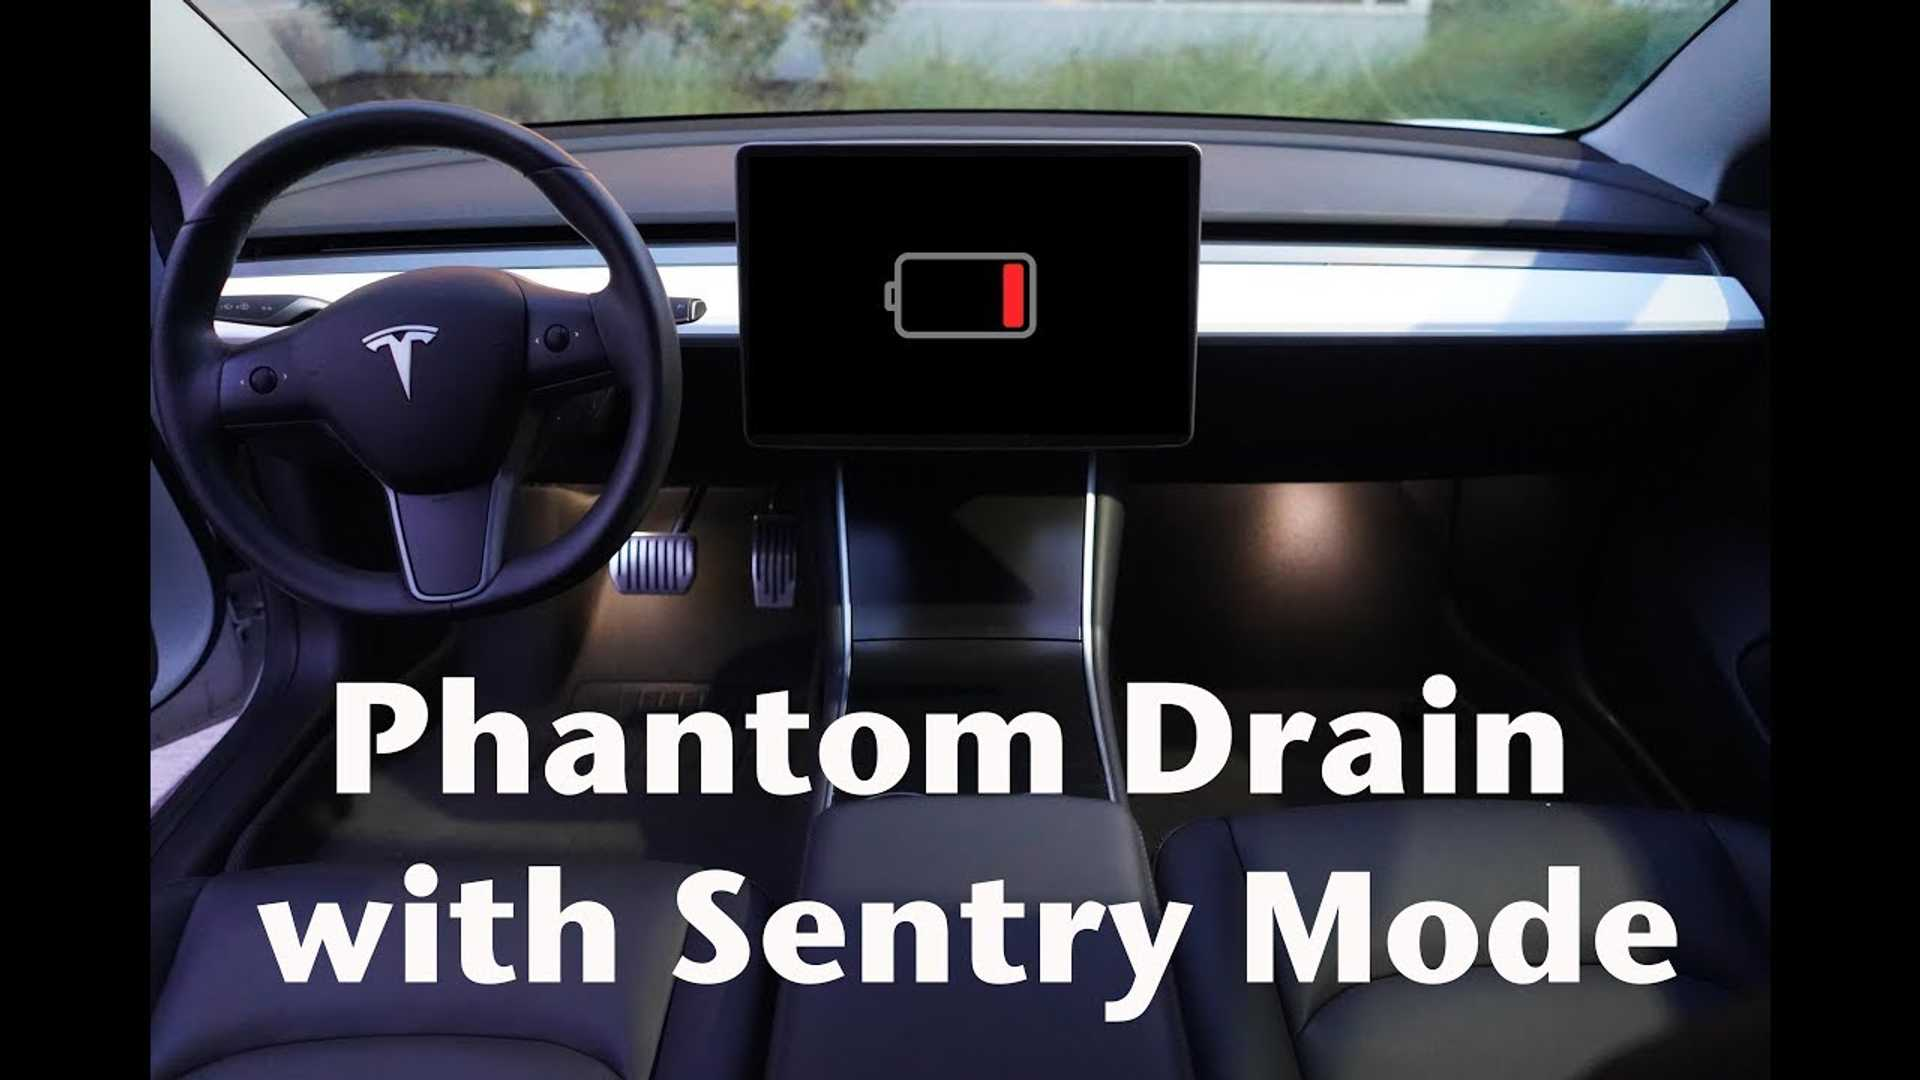 Tesla Model 3 Sentry Mode Drains How Much Of Battery: Video